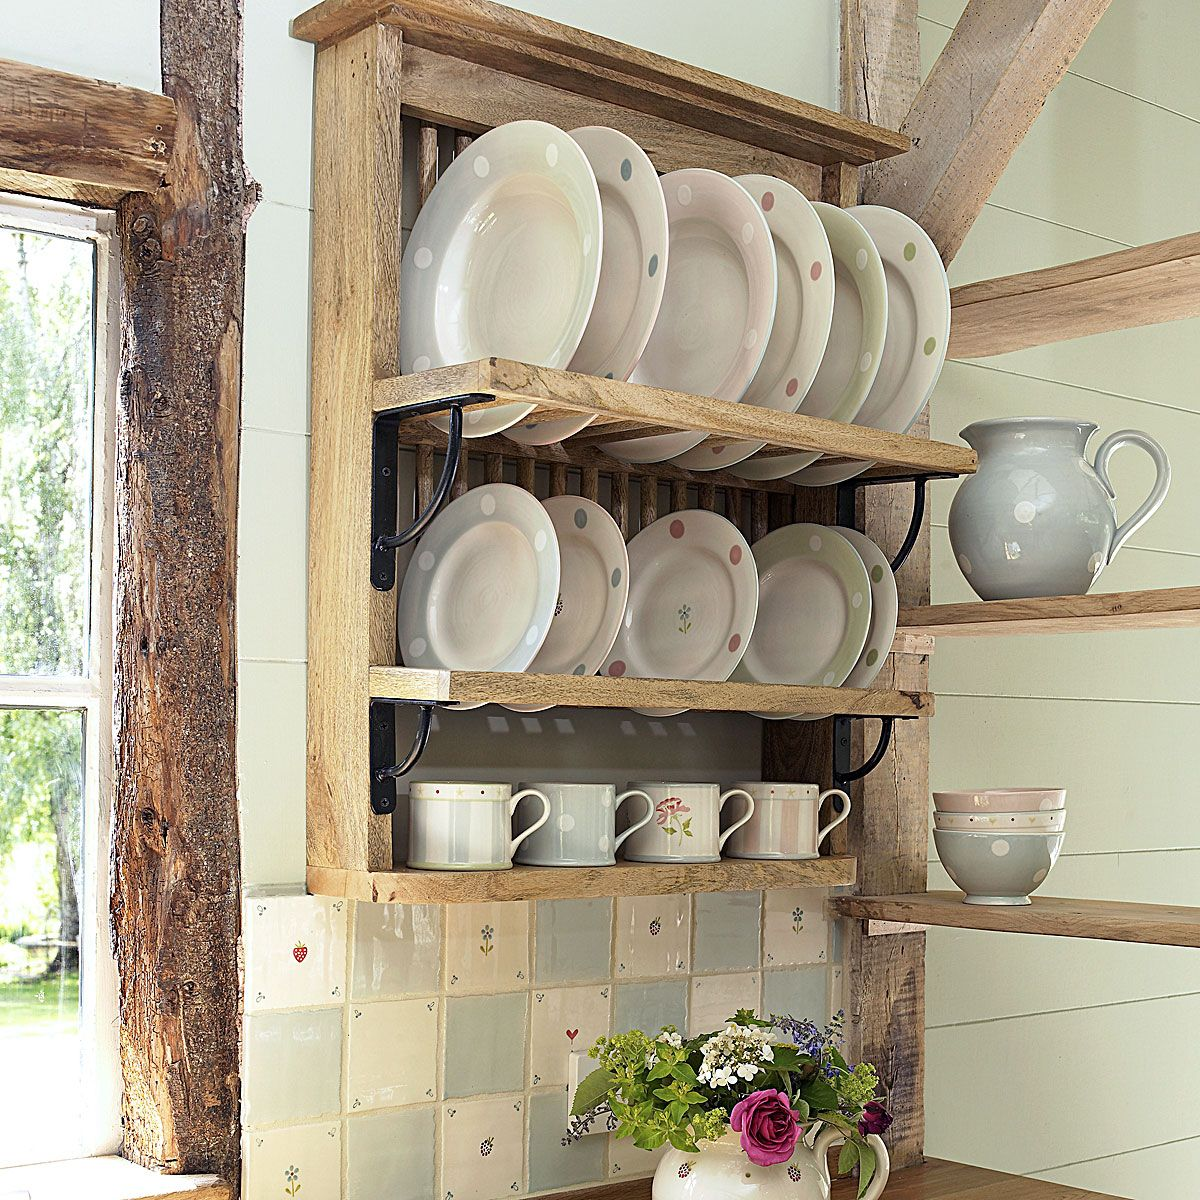 Decorating Ideas Pin Wooden Plate Rack Wall Mounted In Duck Egg Blue Wash On Pinterest Awesome Wooden Plate Rack Wall Mounted & Decorating Ideas Pin Wooden Plate Rack Wall Mounted In Duck Egg ...